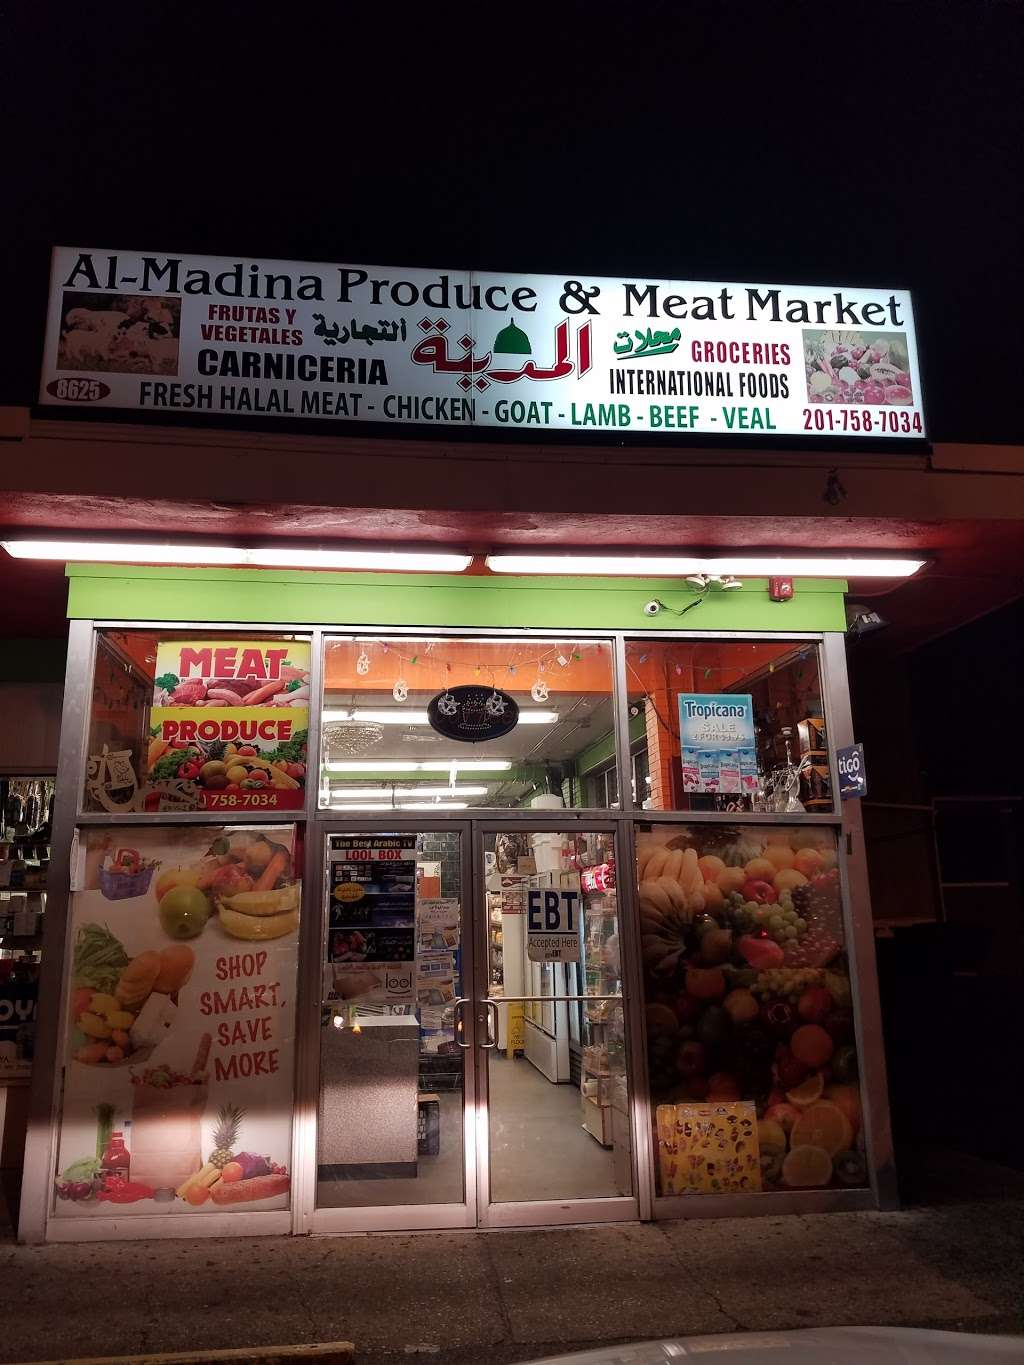 Al-Madina - store  | Photo 1 of 2 | Address: 8625 Bergenline Ave, North Bergen, NJ 07047, USA | Phone: (201) 758-7034